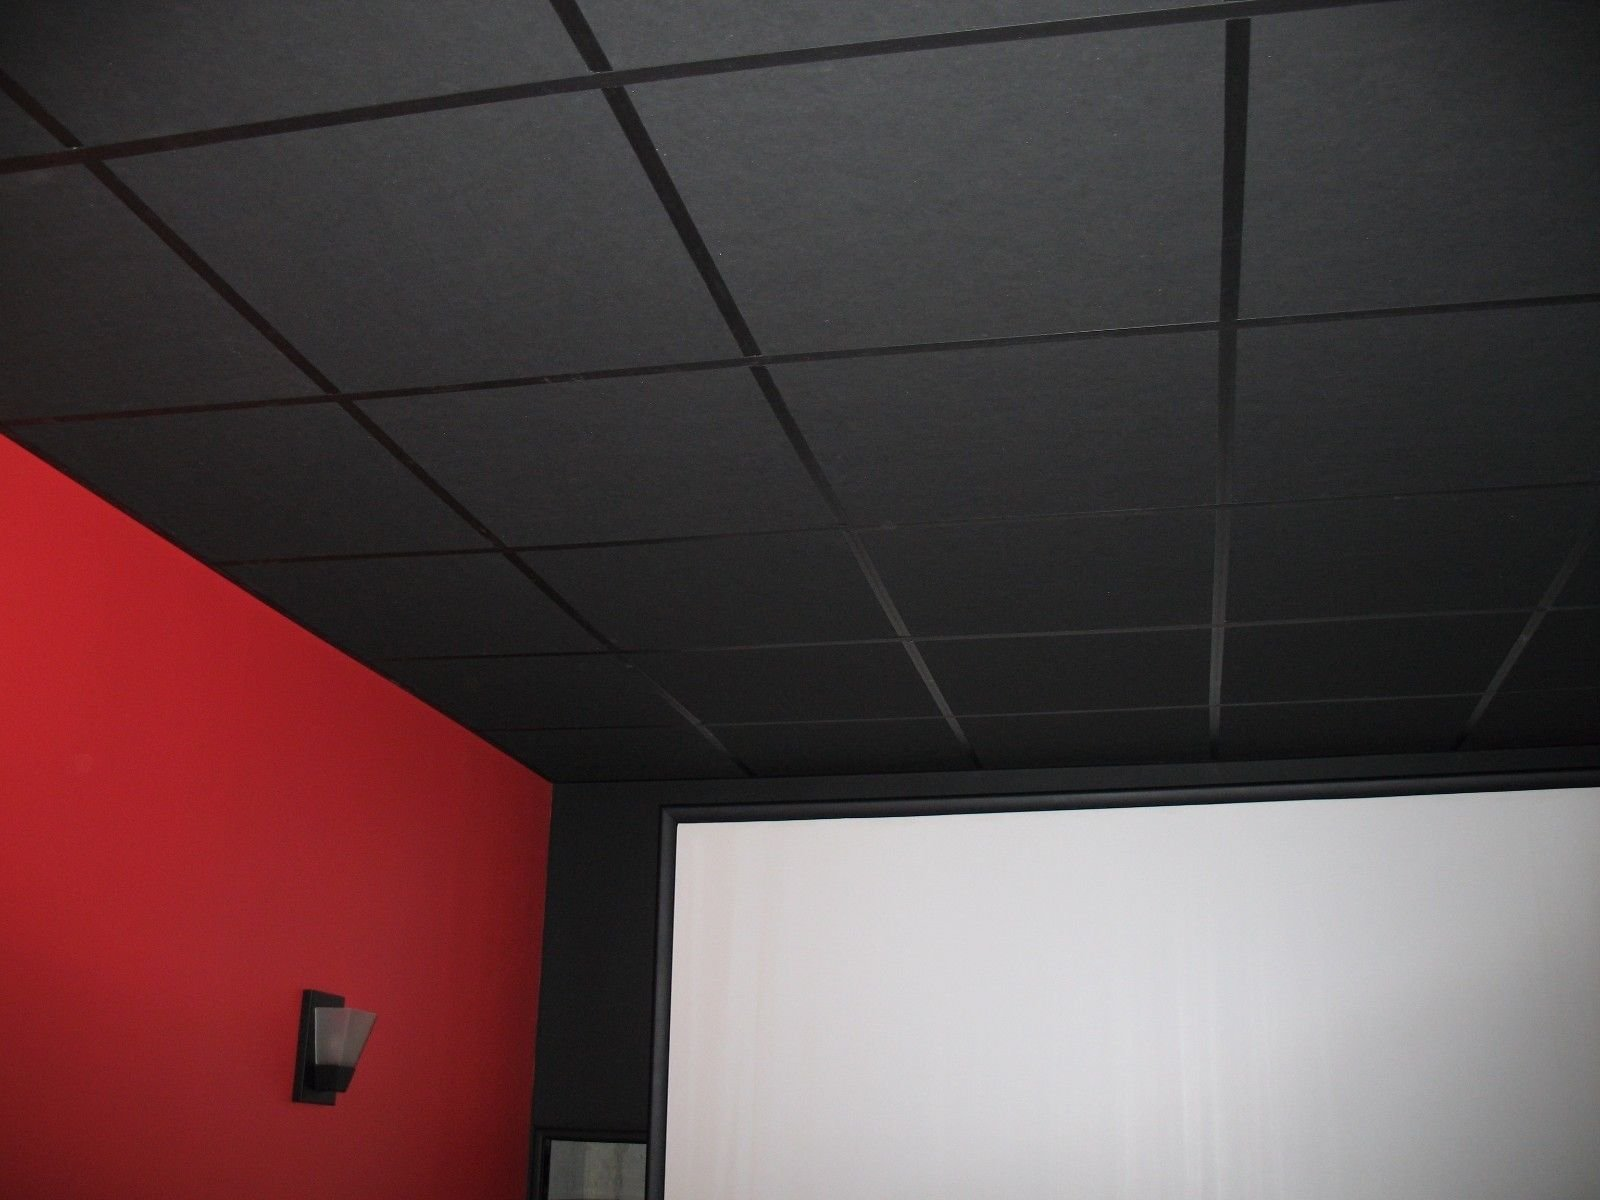 Black Acoustic Drop Ceiling Tiles 24'' x 24'' x 2'', Sound Absorbing, 10 pieces by BRB Products